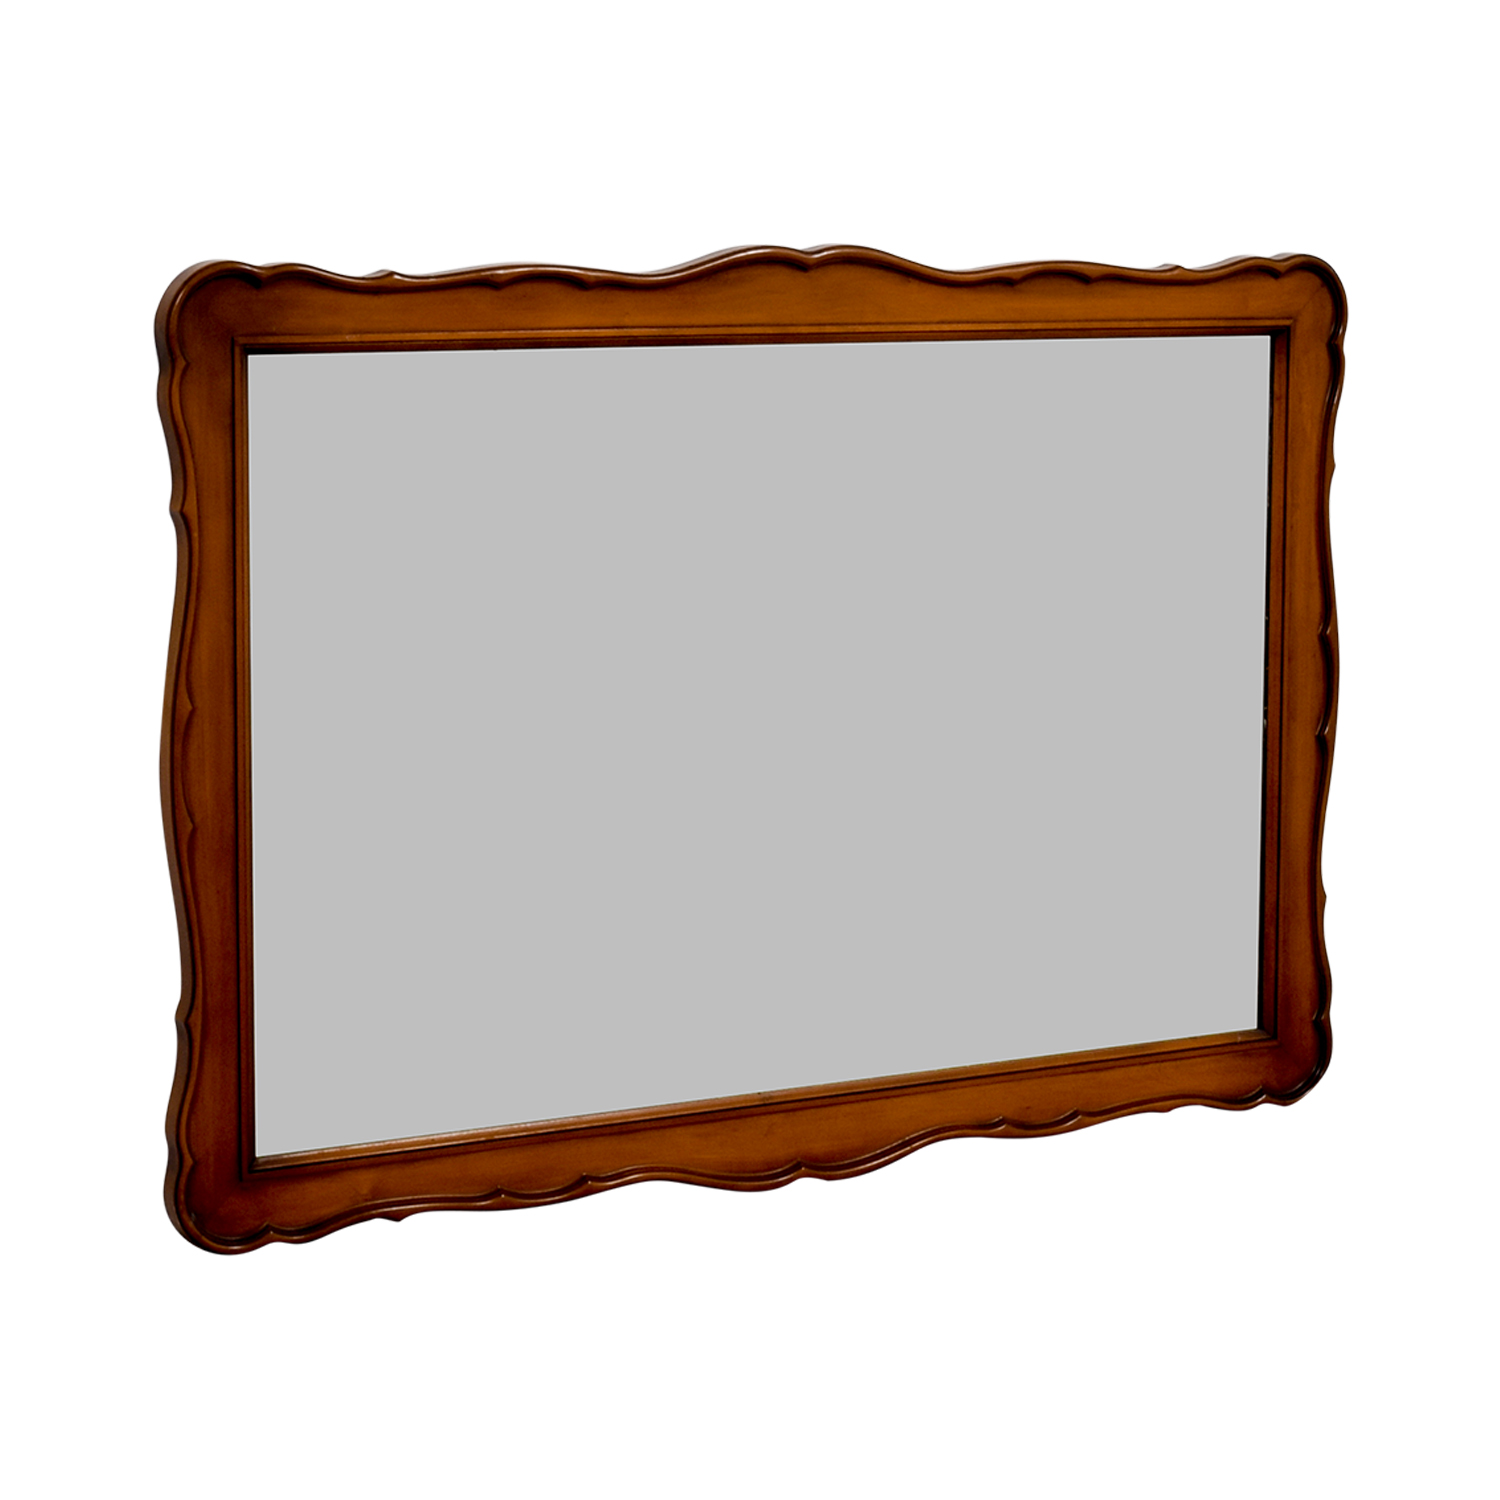 White Fine Furniture White Fine Furniture Wood Framed Mirror